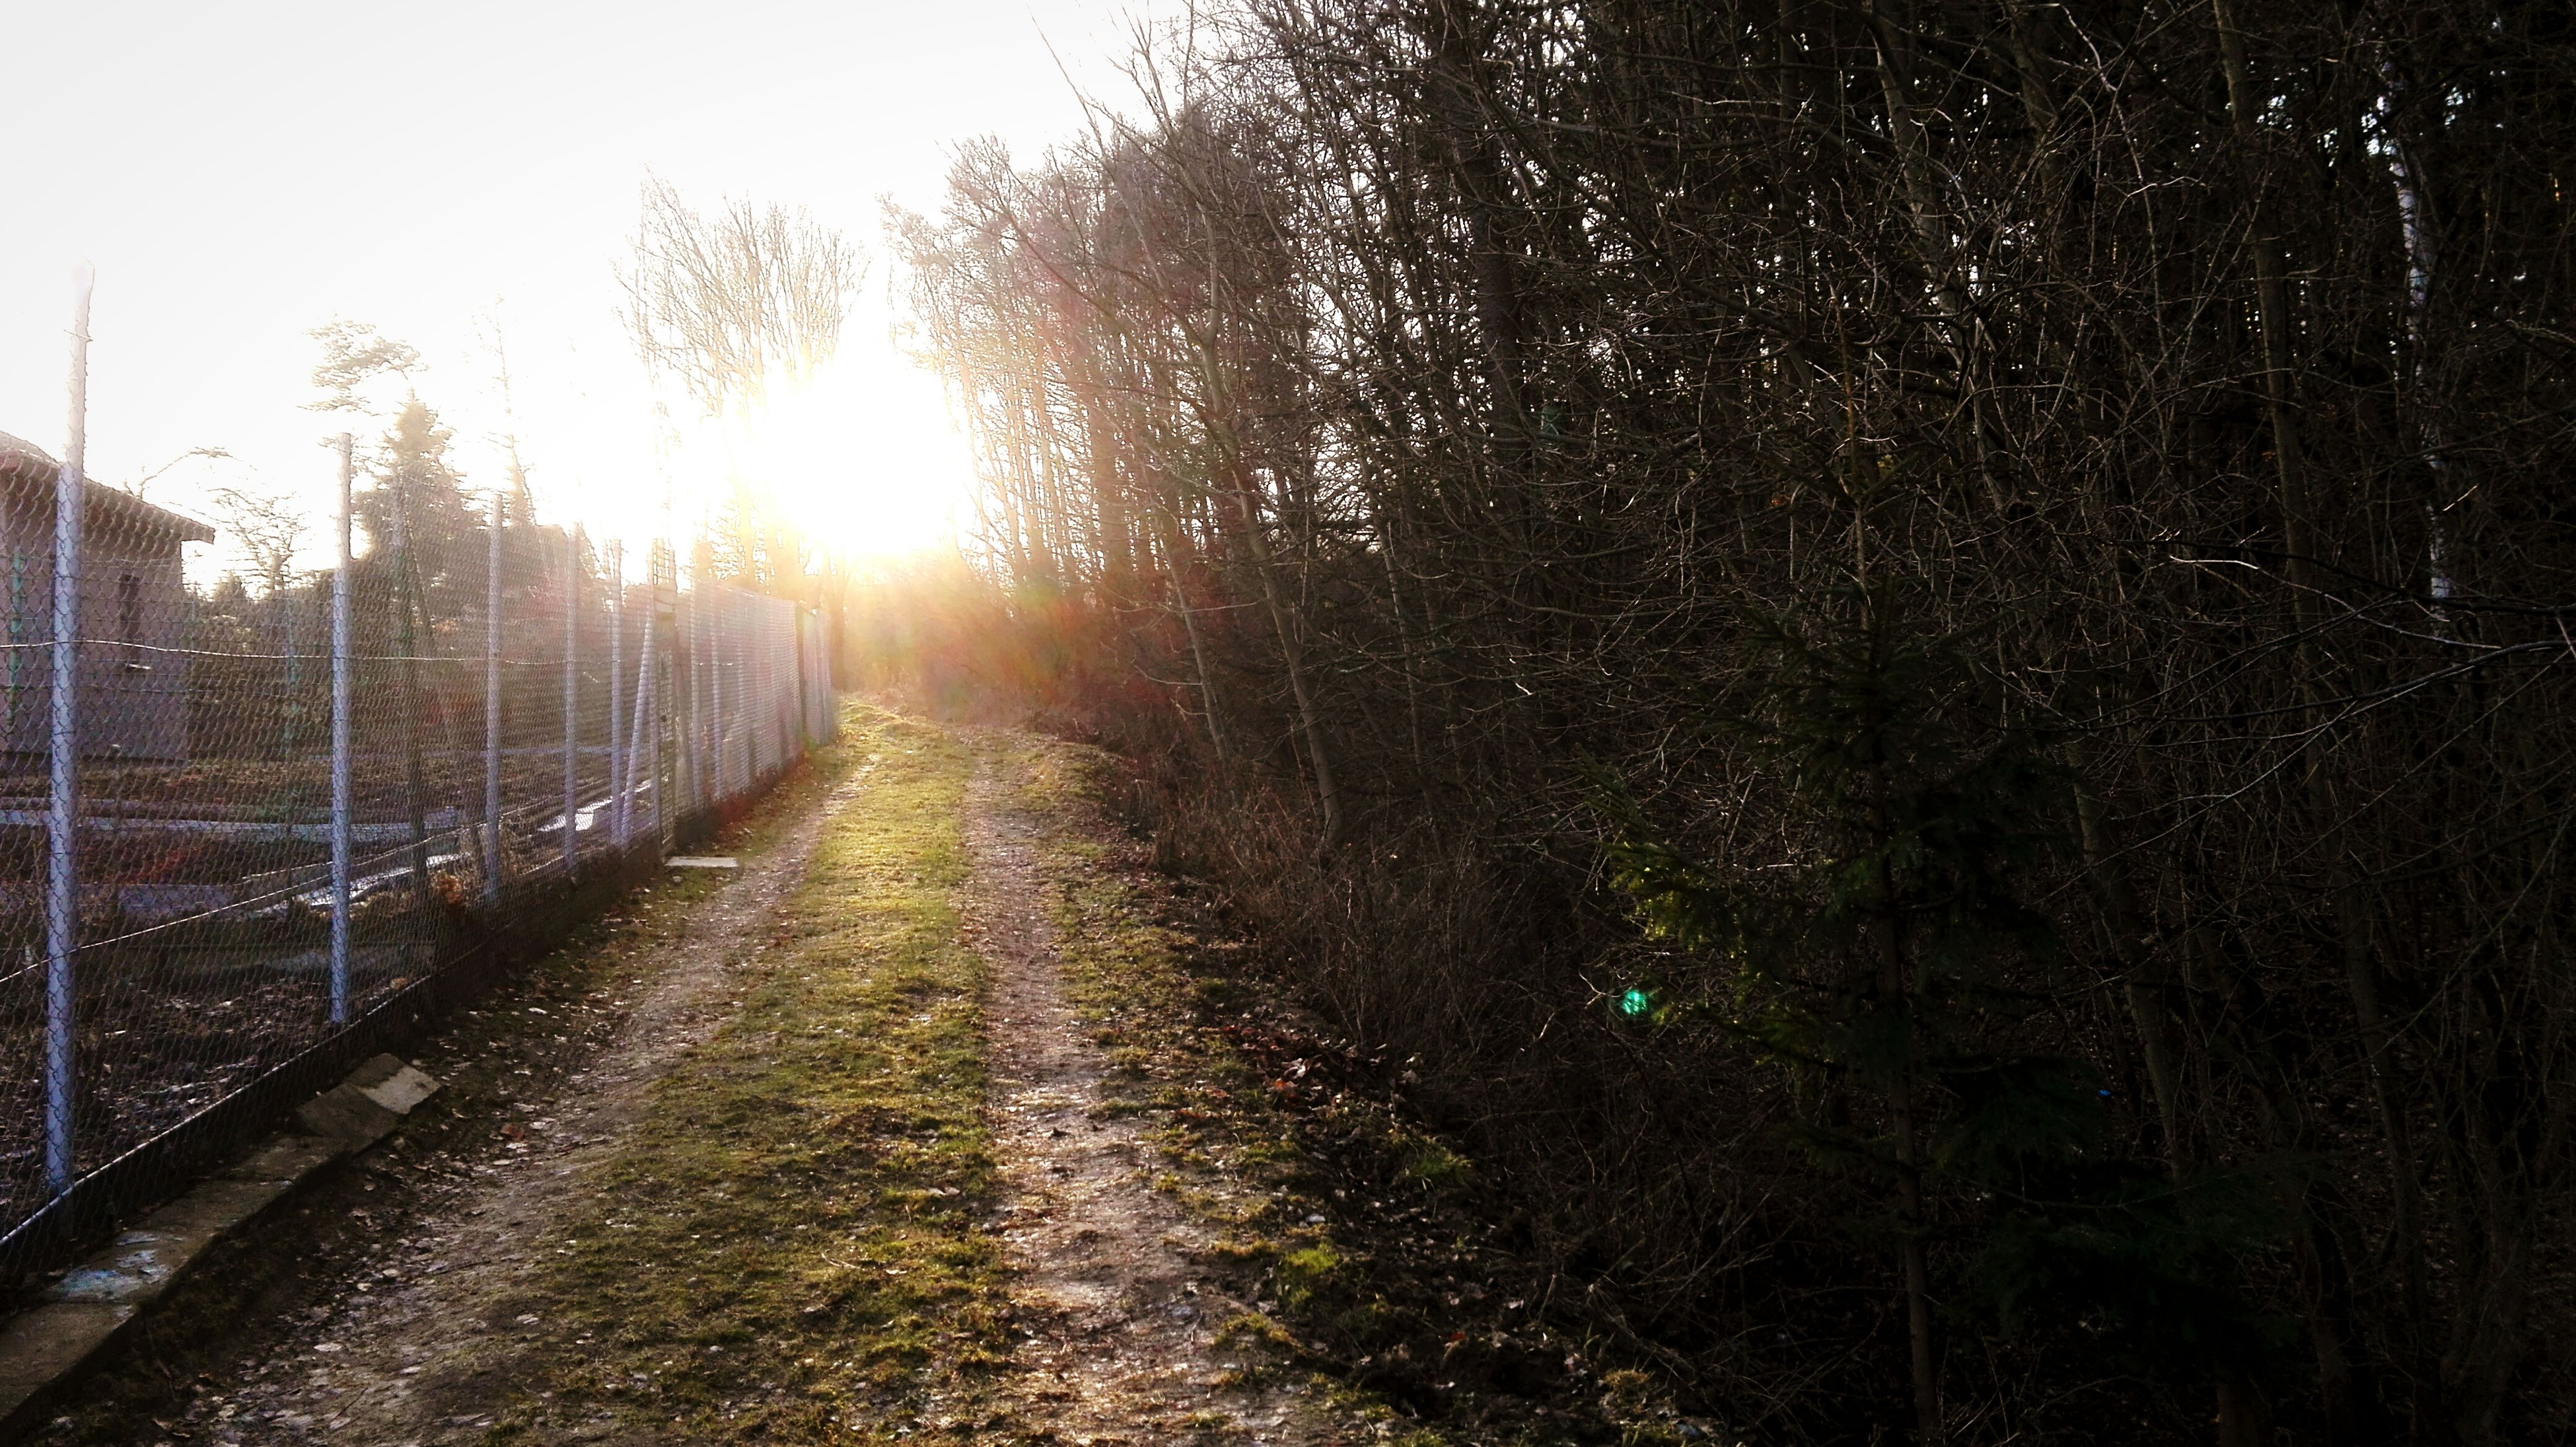 the way forward, diminishing perspective, vanishing point, sun, tree, tranquility, road, transportation, nature, sunlight, tranquil scene, sunbeam, lens flare, dirt road, beauty in nature, clear sky, empty road, sunset, scenics, country road